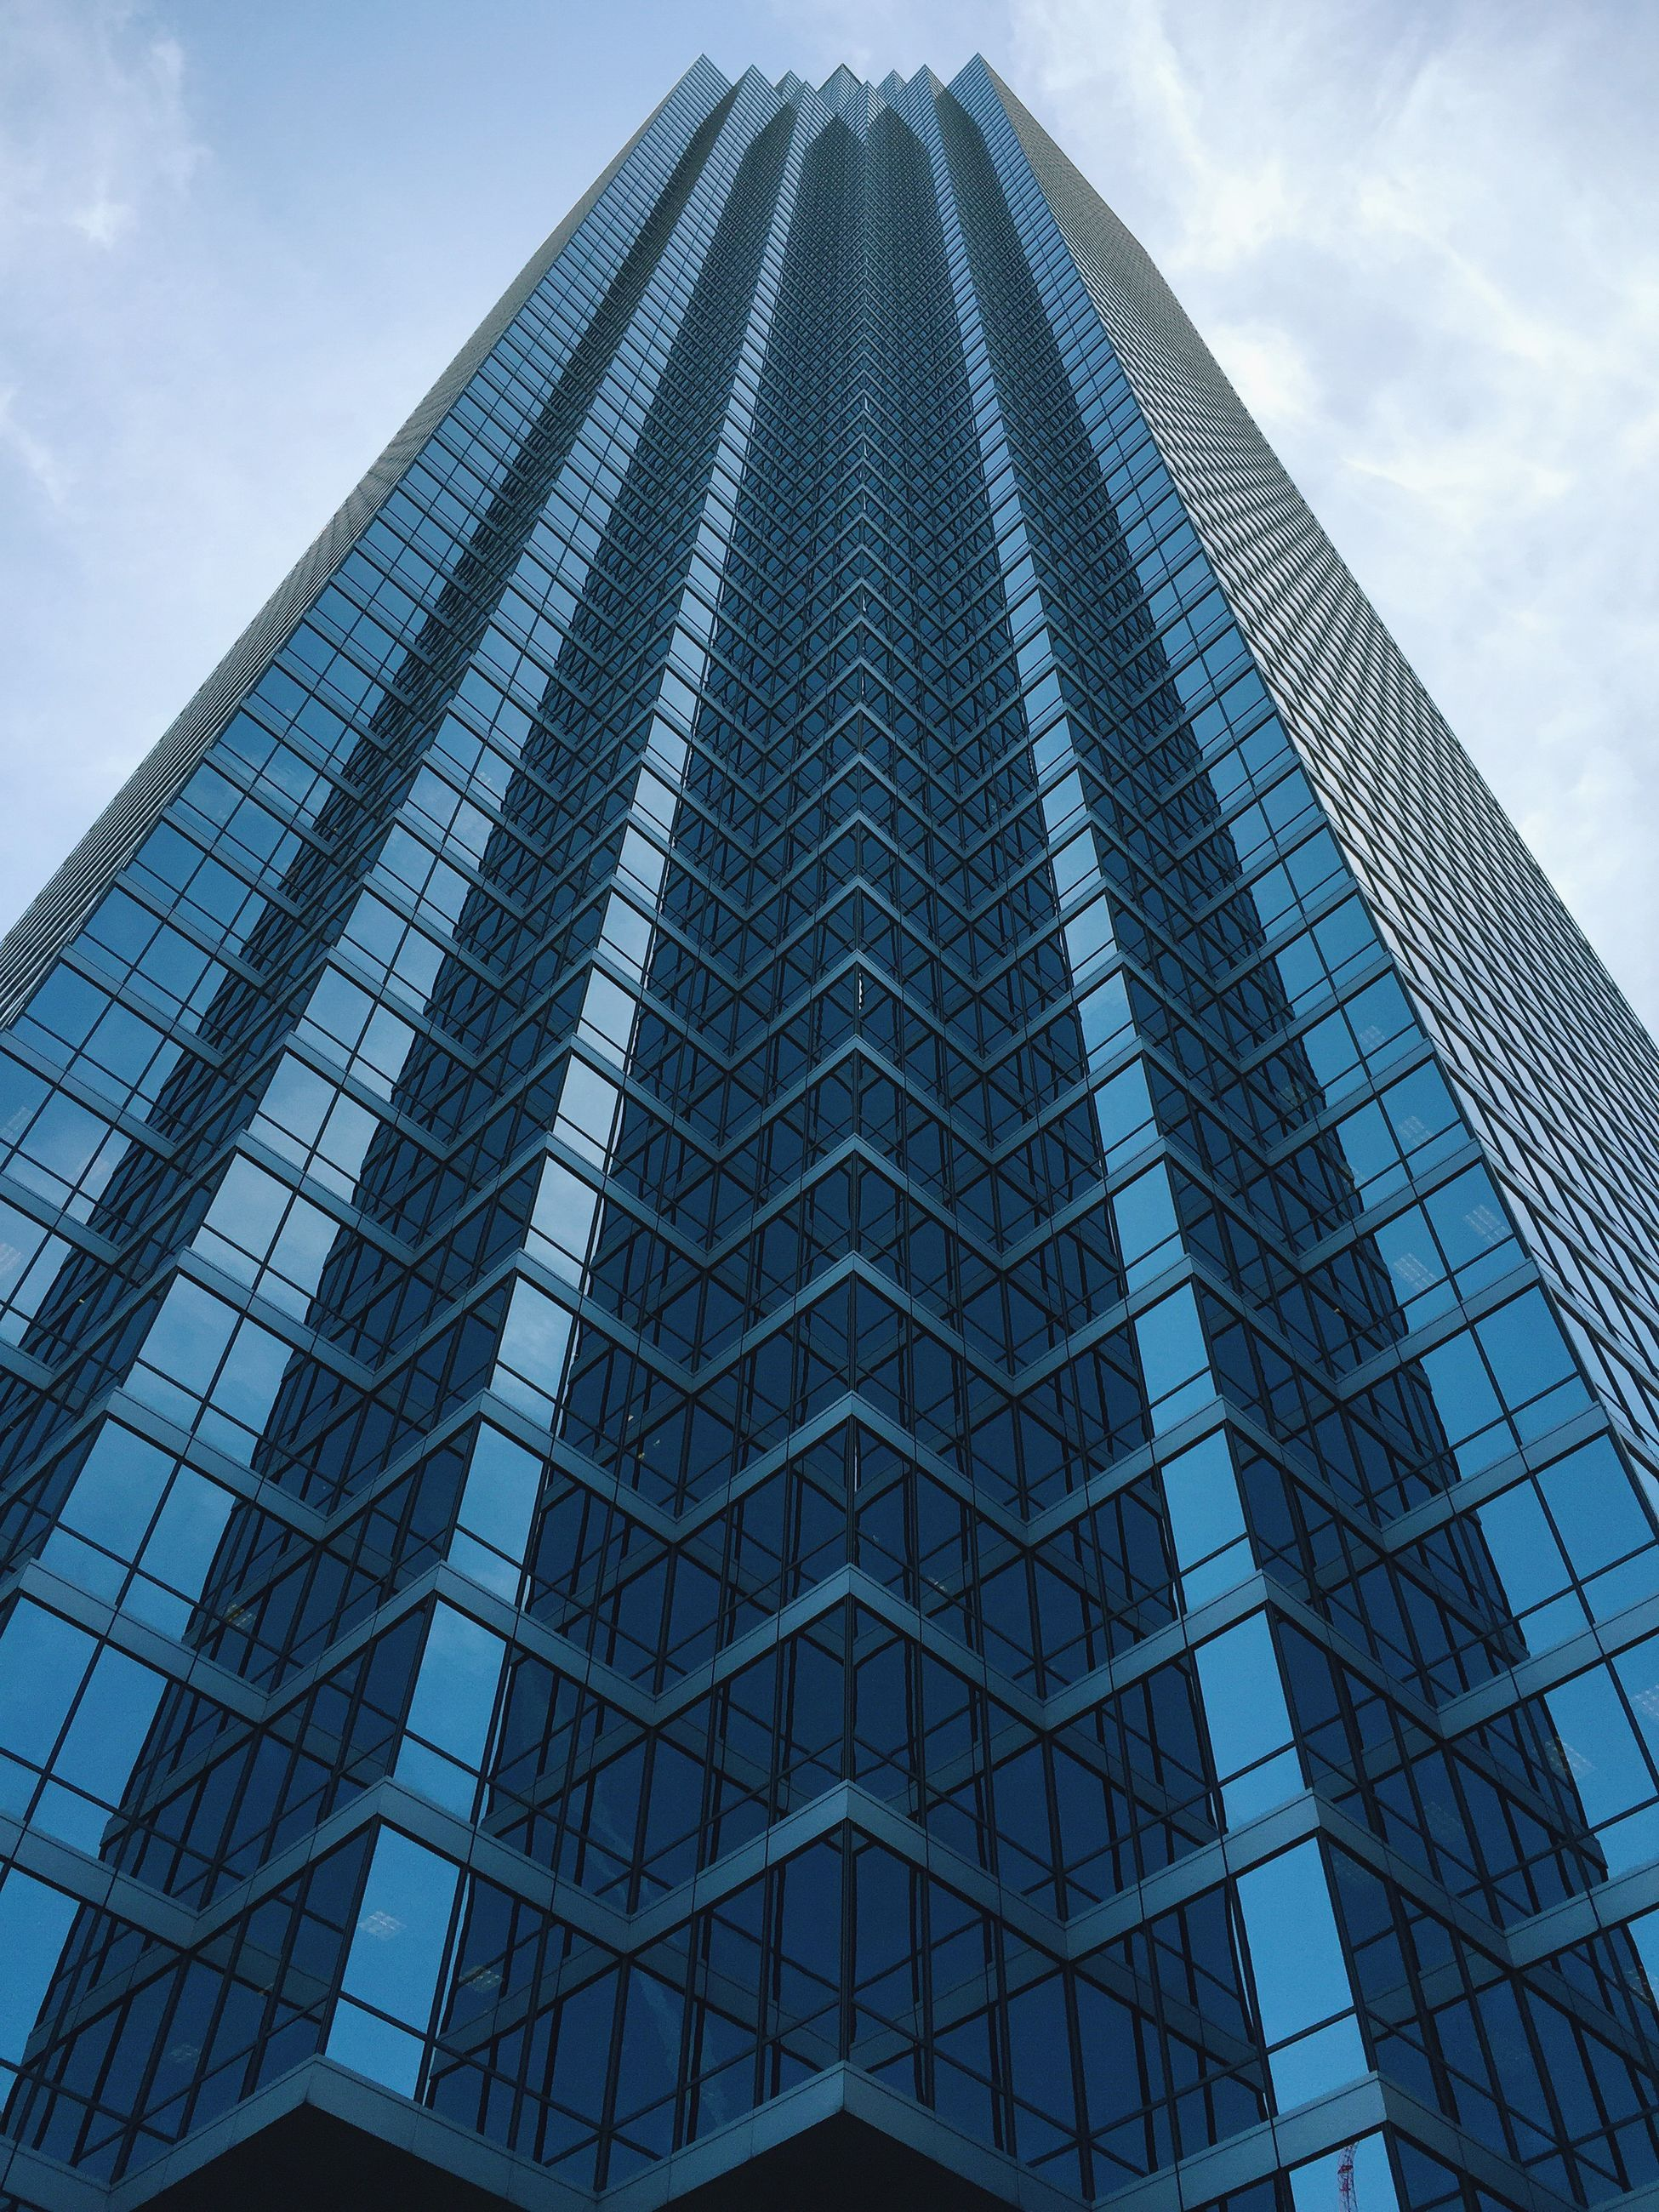 architecture, low angle view, building exterior, built structure, modern, office building, glass - material, city, tall - high, skyscraper, sky, reflection, tower, building, pattern, architectural feature, day, window, no people, outdoors